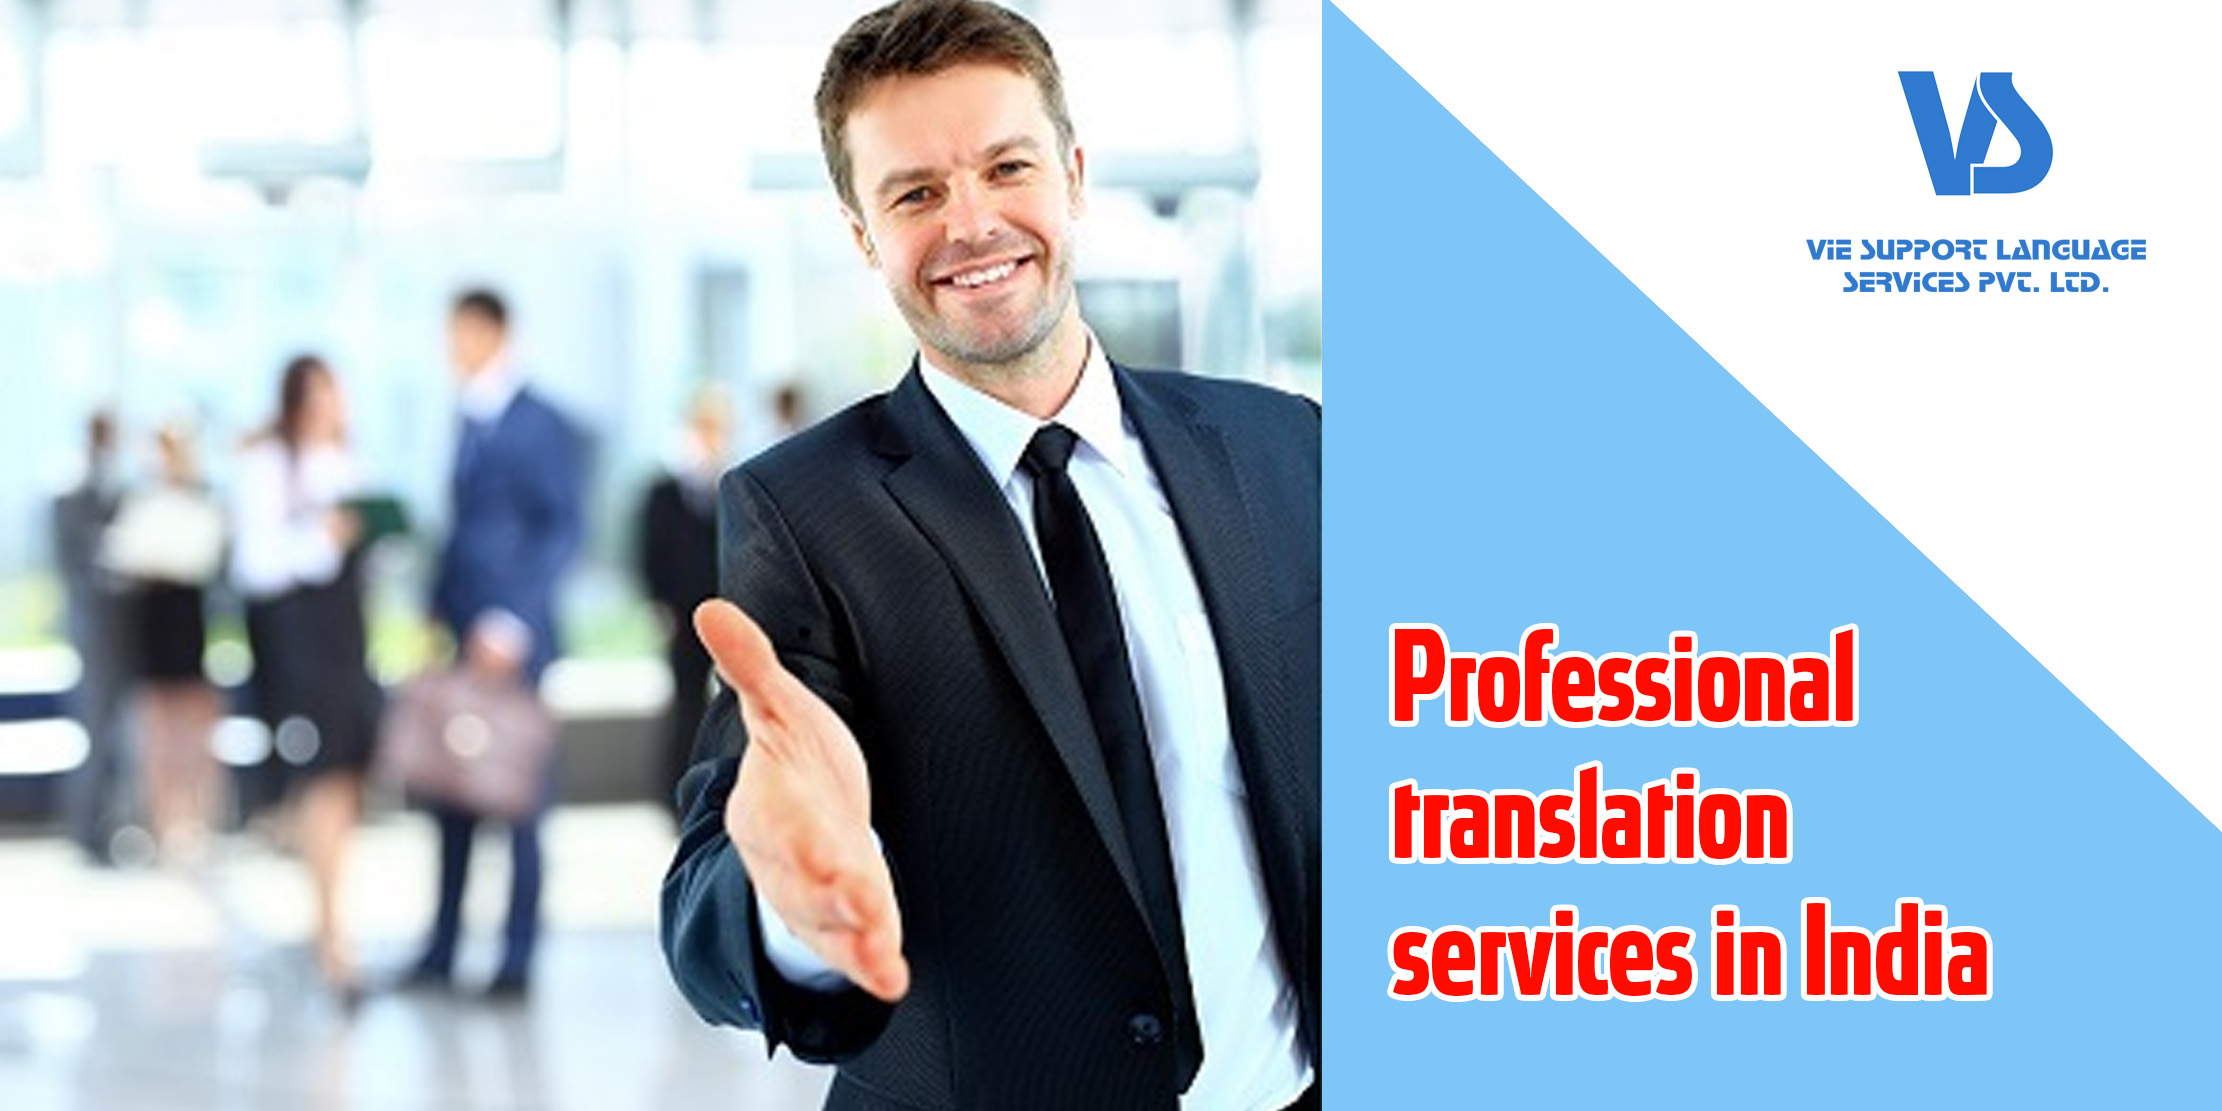 professional translation services in india vie support